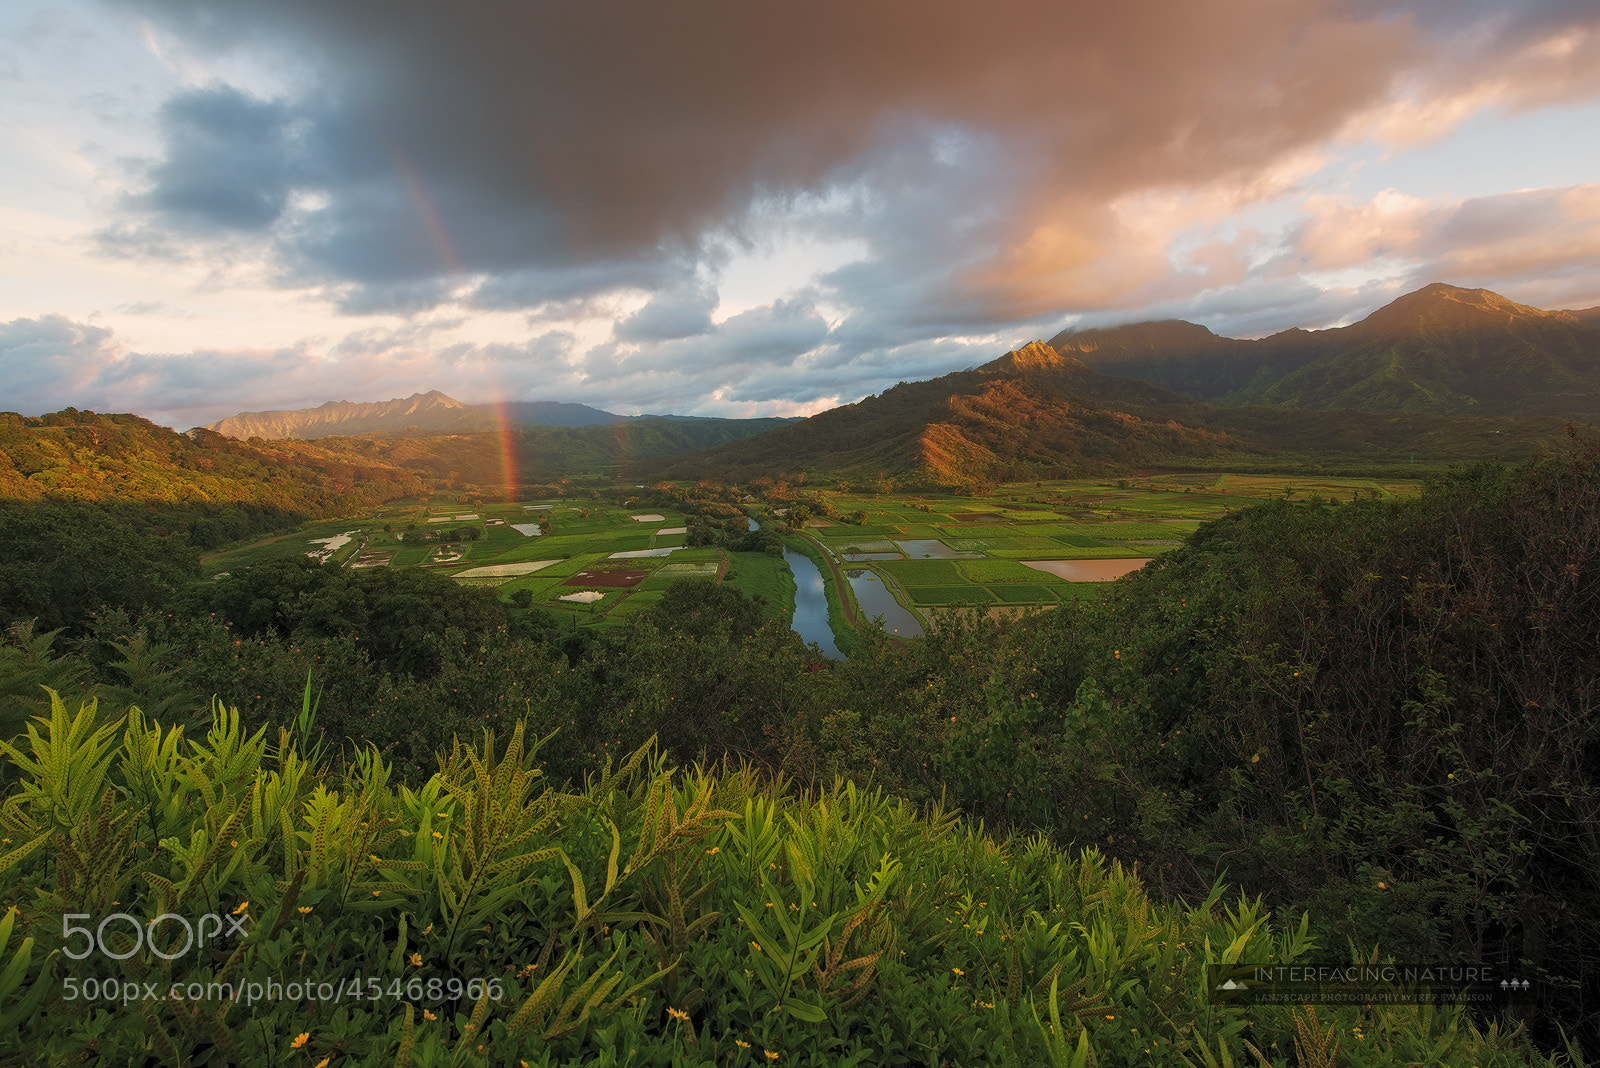 Photograph Heavenly Hanalei by Jeff Swanson on 500px